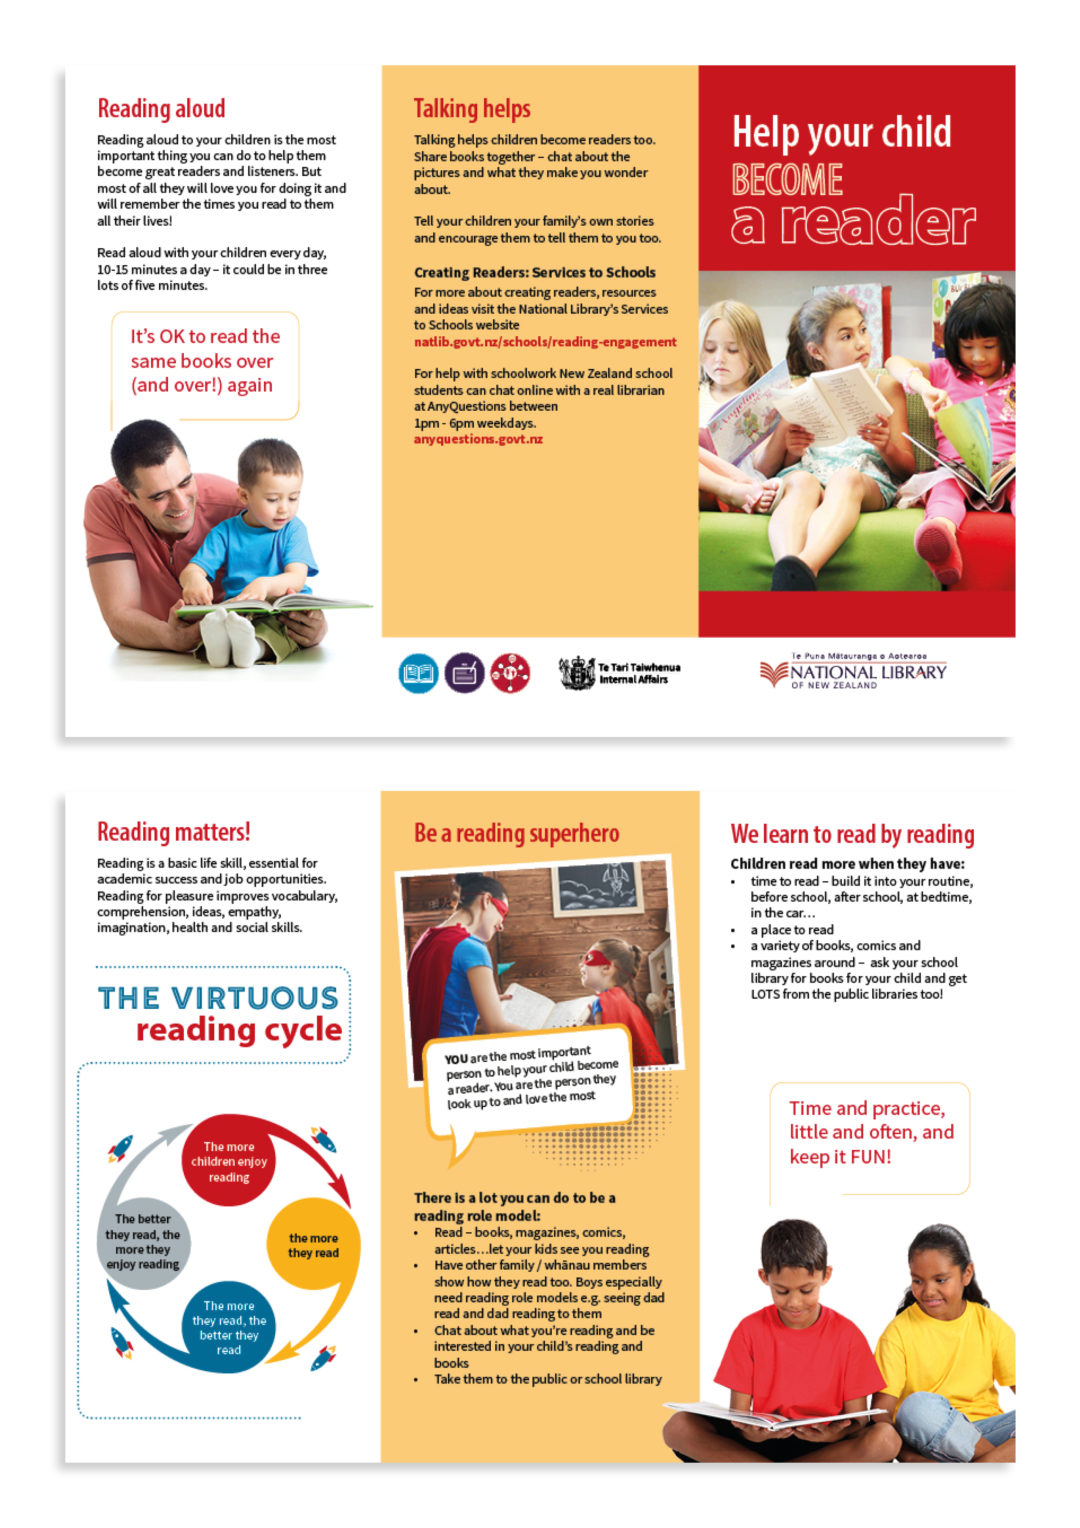 Read aloud brochure (National Library)